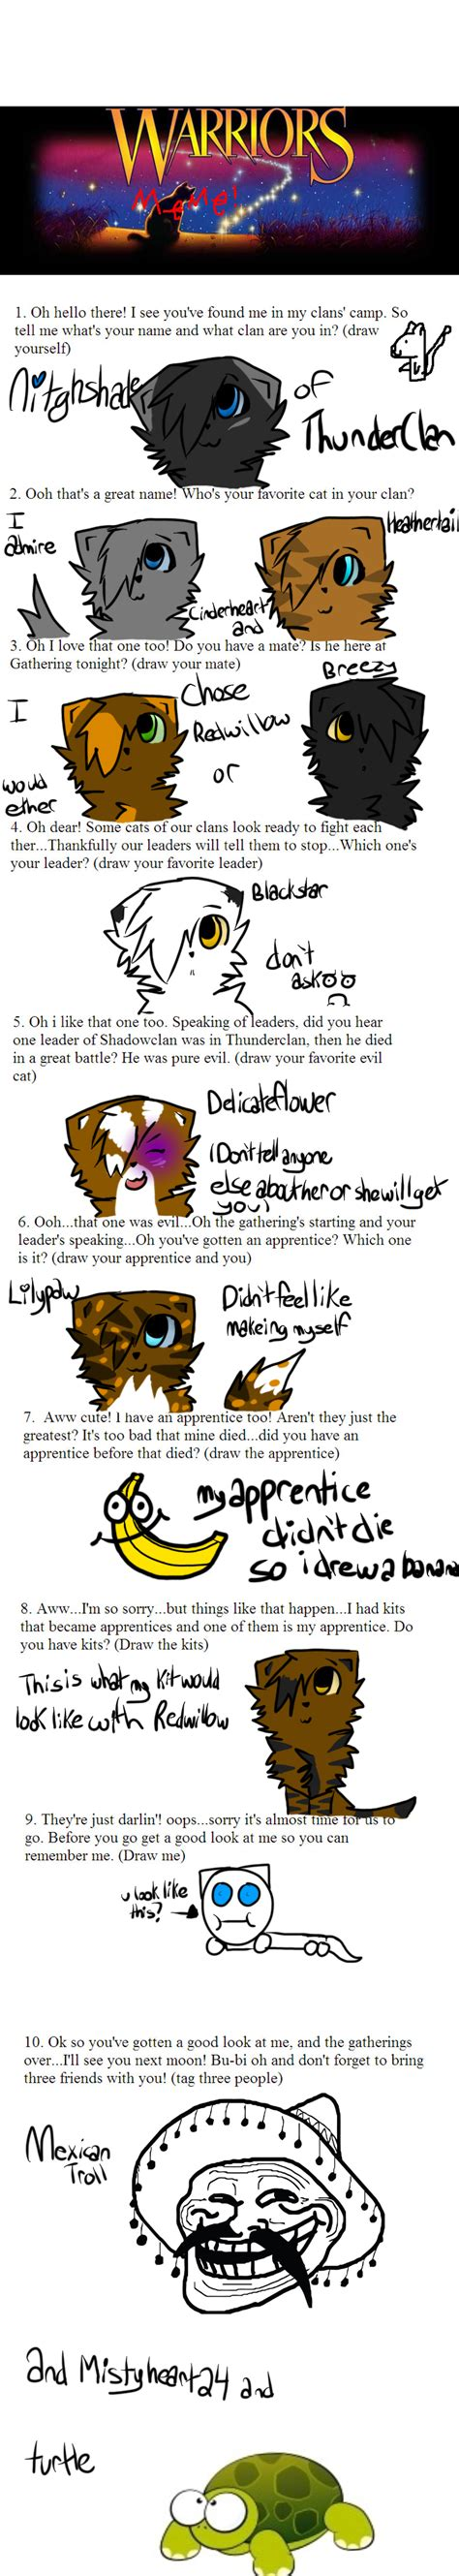 Warrior Cats Meme - warrior cats meme yeah warrior cats memes dogs being basic